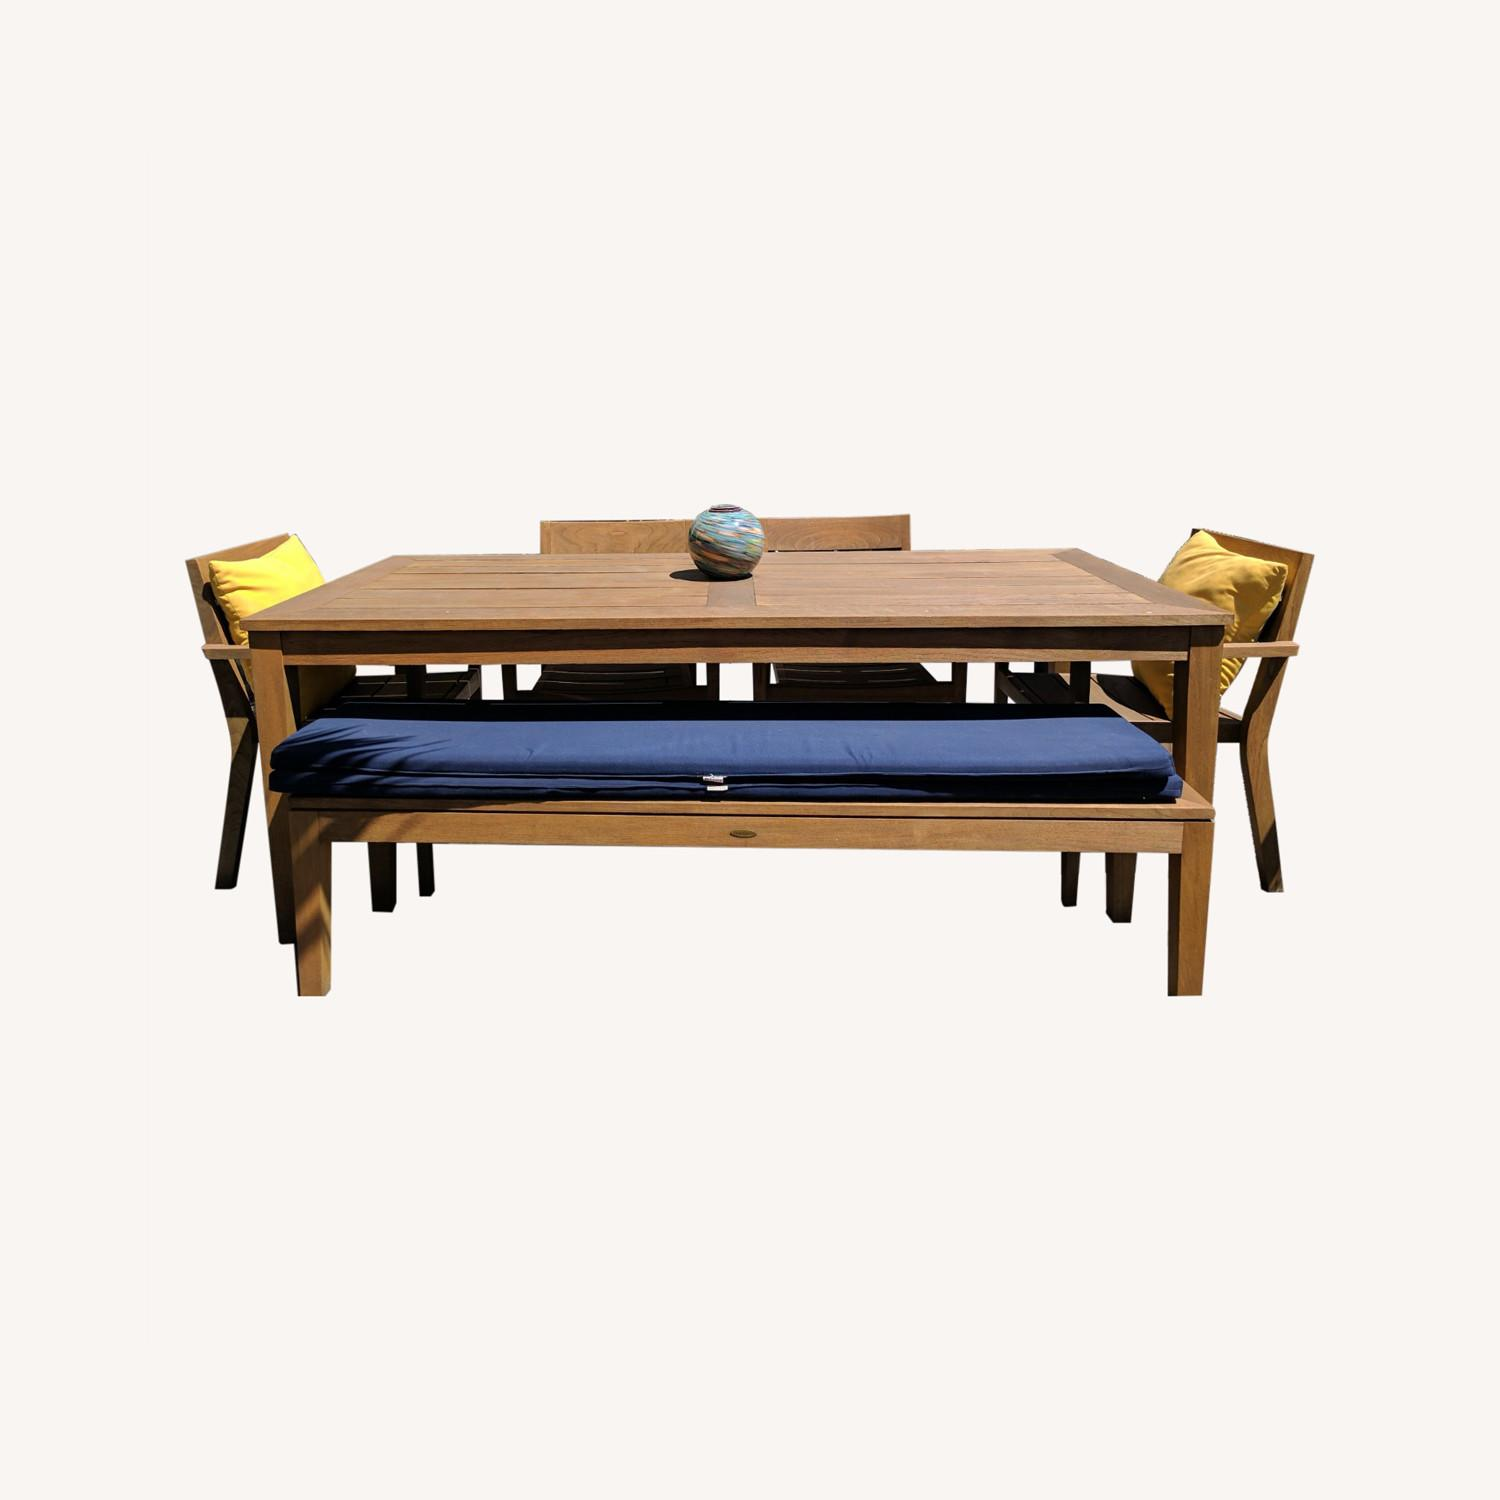 Crate & Barrel Regatta Dining Table Bench Cushions - image-0